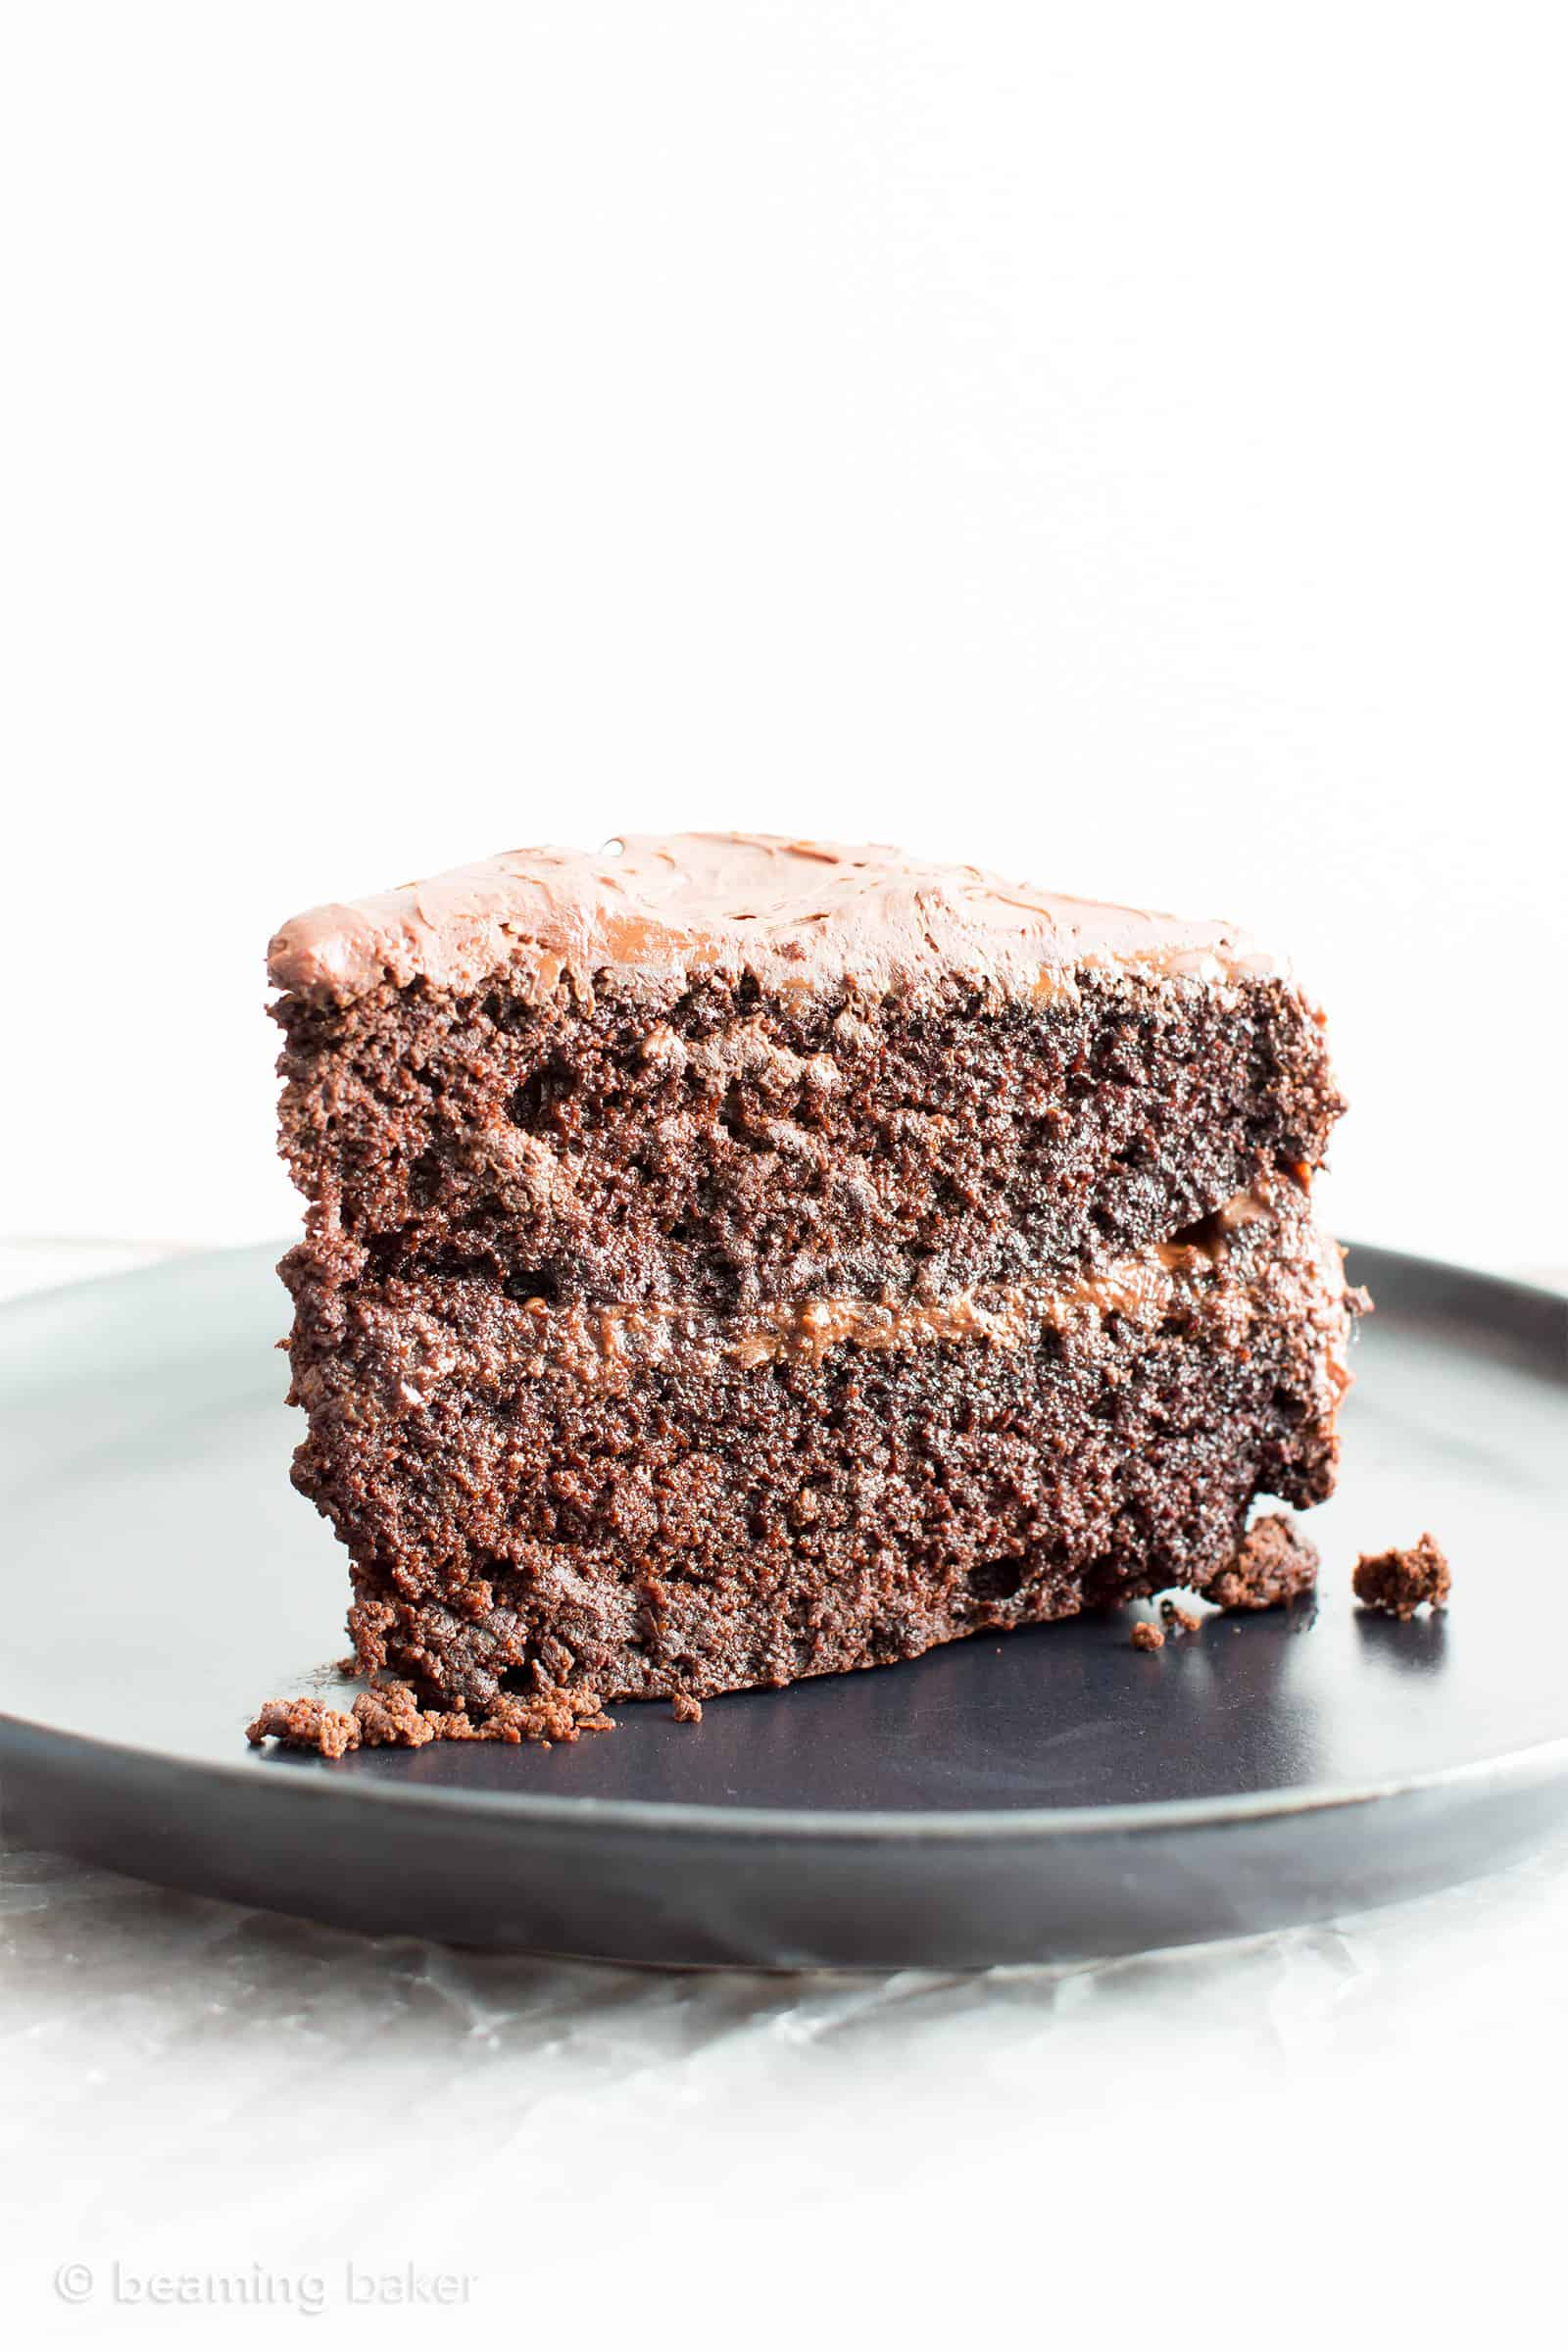 Vegan Chocolate Cake Recipe Gluten Free Dairy Free V Refined